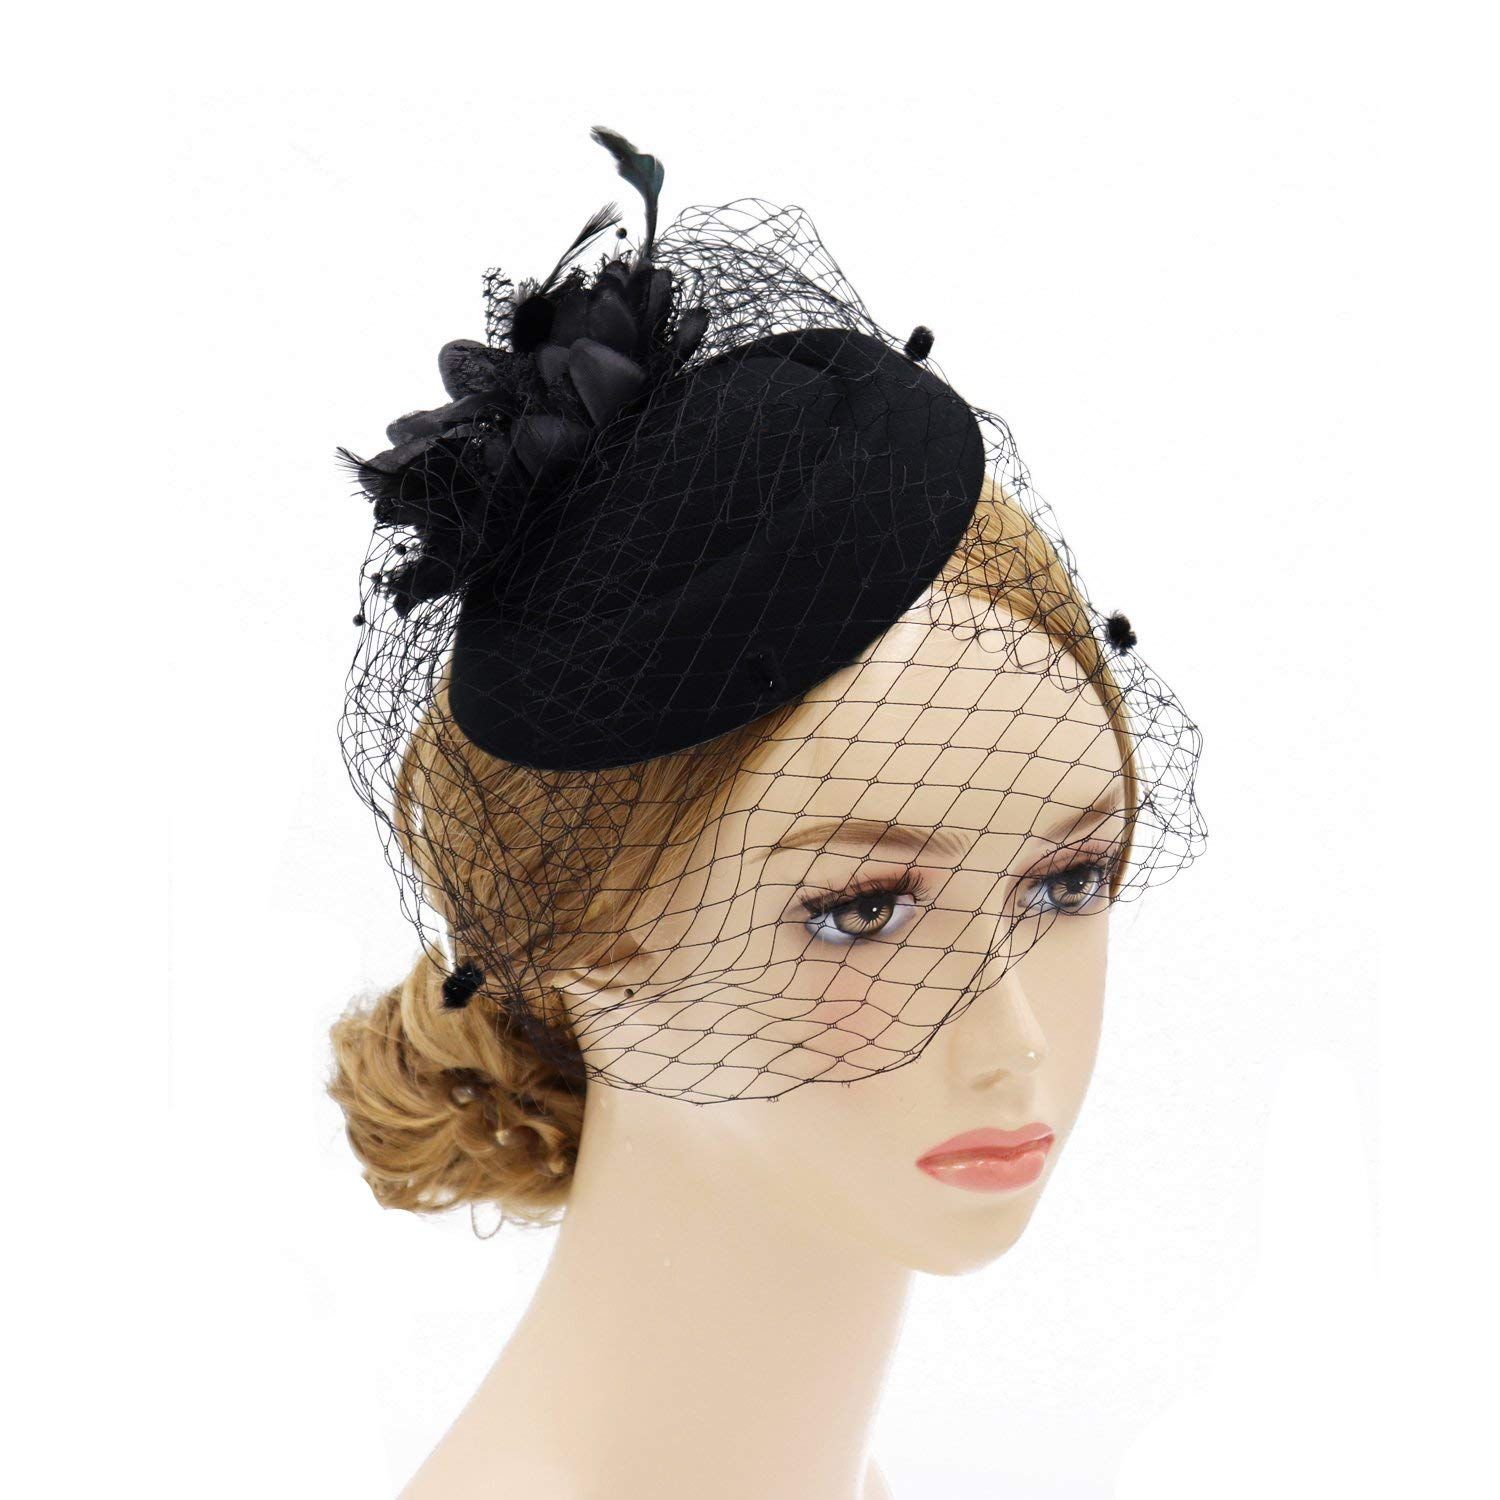 274bee46 Get Quotations · Wheebo Fascinator Hat Flower Feather Mesh Veil Wedding Tea  Party Derby Cocktail Hat Headwear for Women